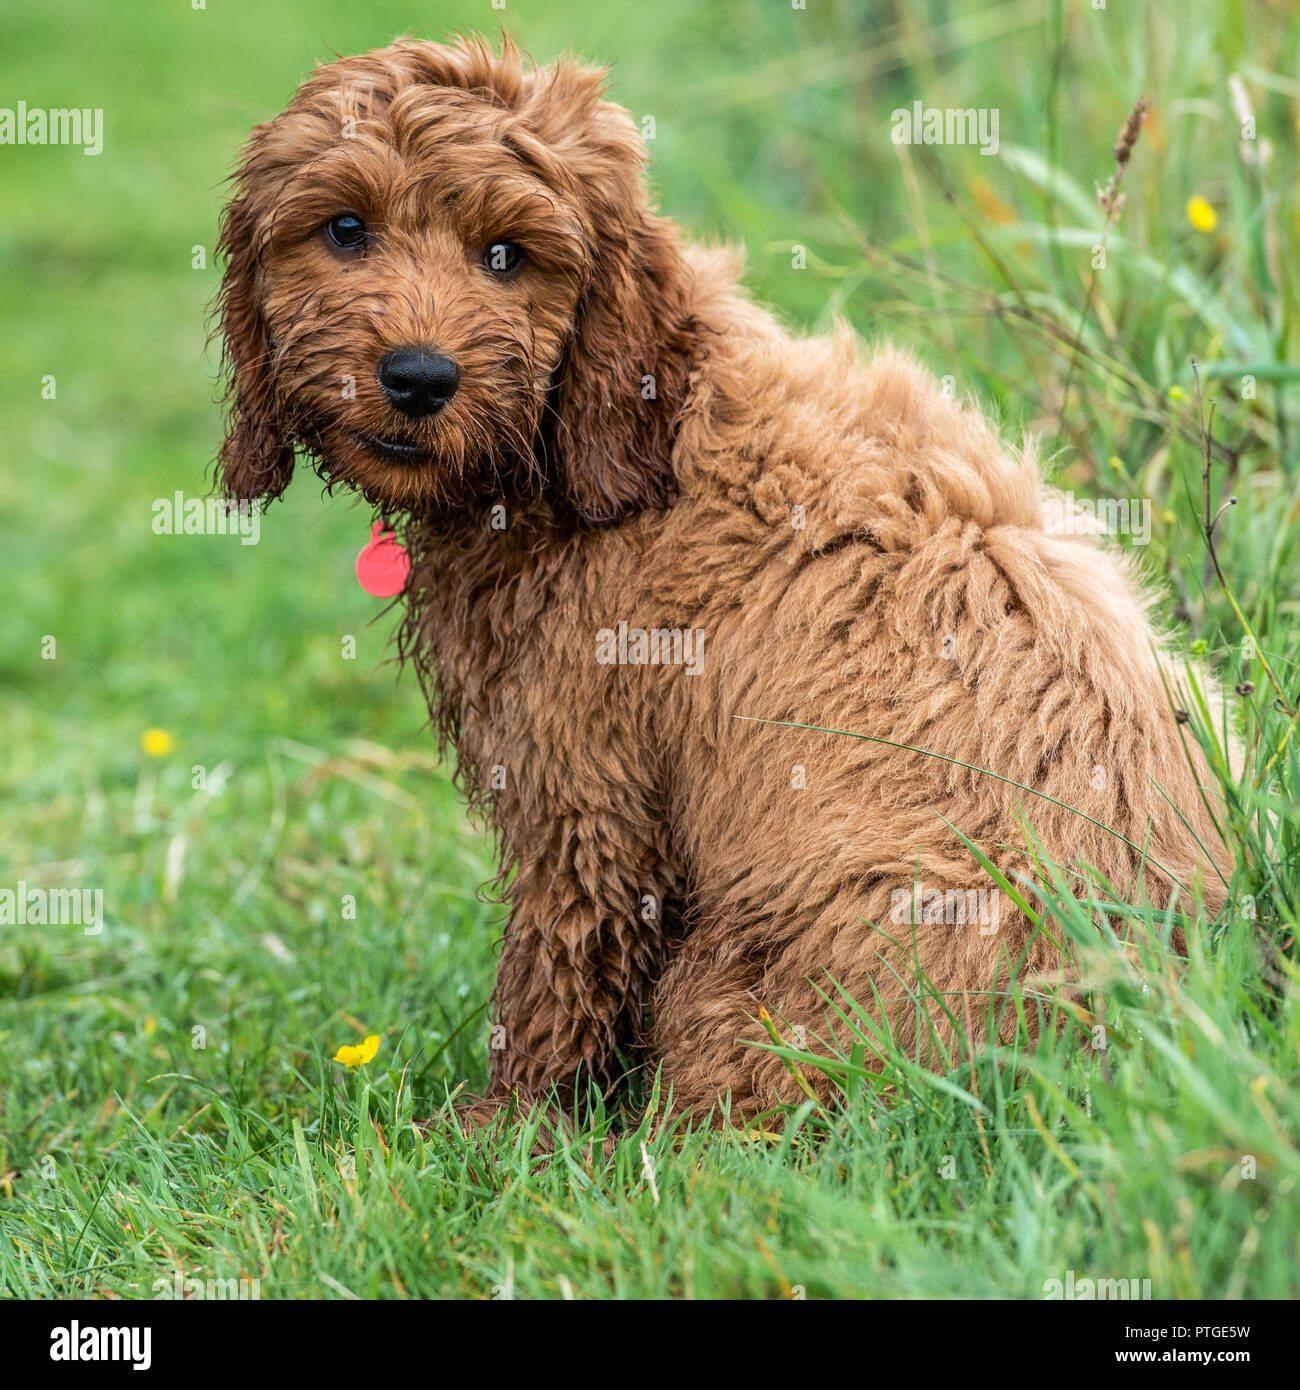 A young cockapoo puppy sitting in garden on a wet day Stock Photo